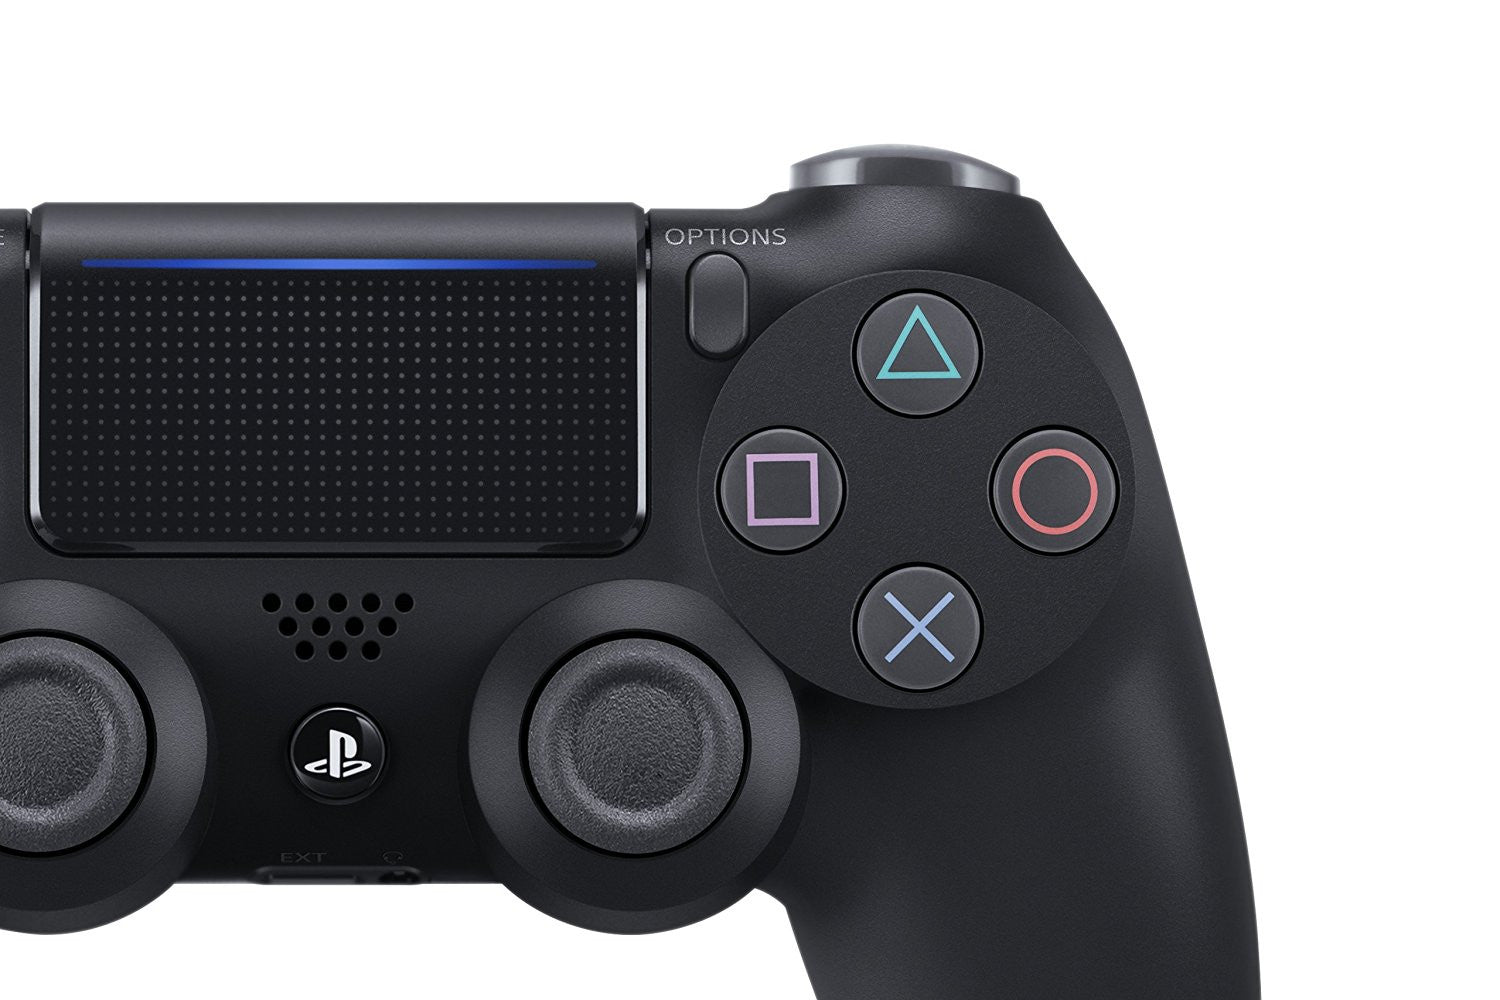 Sony PlayStation DualShock 4 - Black V3 - Console Accessories by Sony The Chelsea Gamer